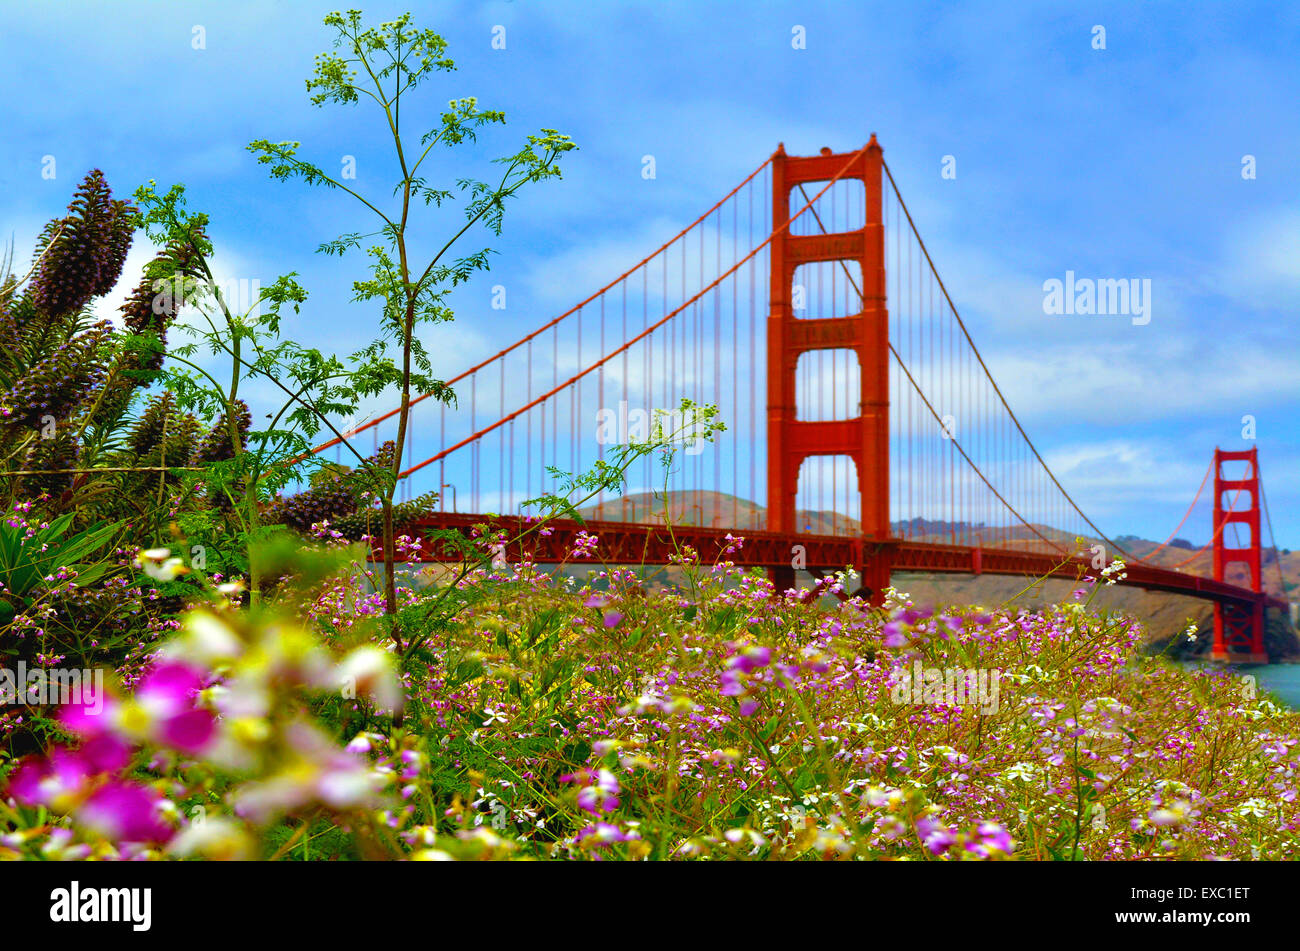 Flowers blussoome at the Golden Gate Bridge in San Francisco, CA.Frommers travel guide considers Golden Gate Bridge - Stock Image